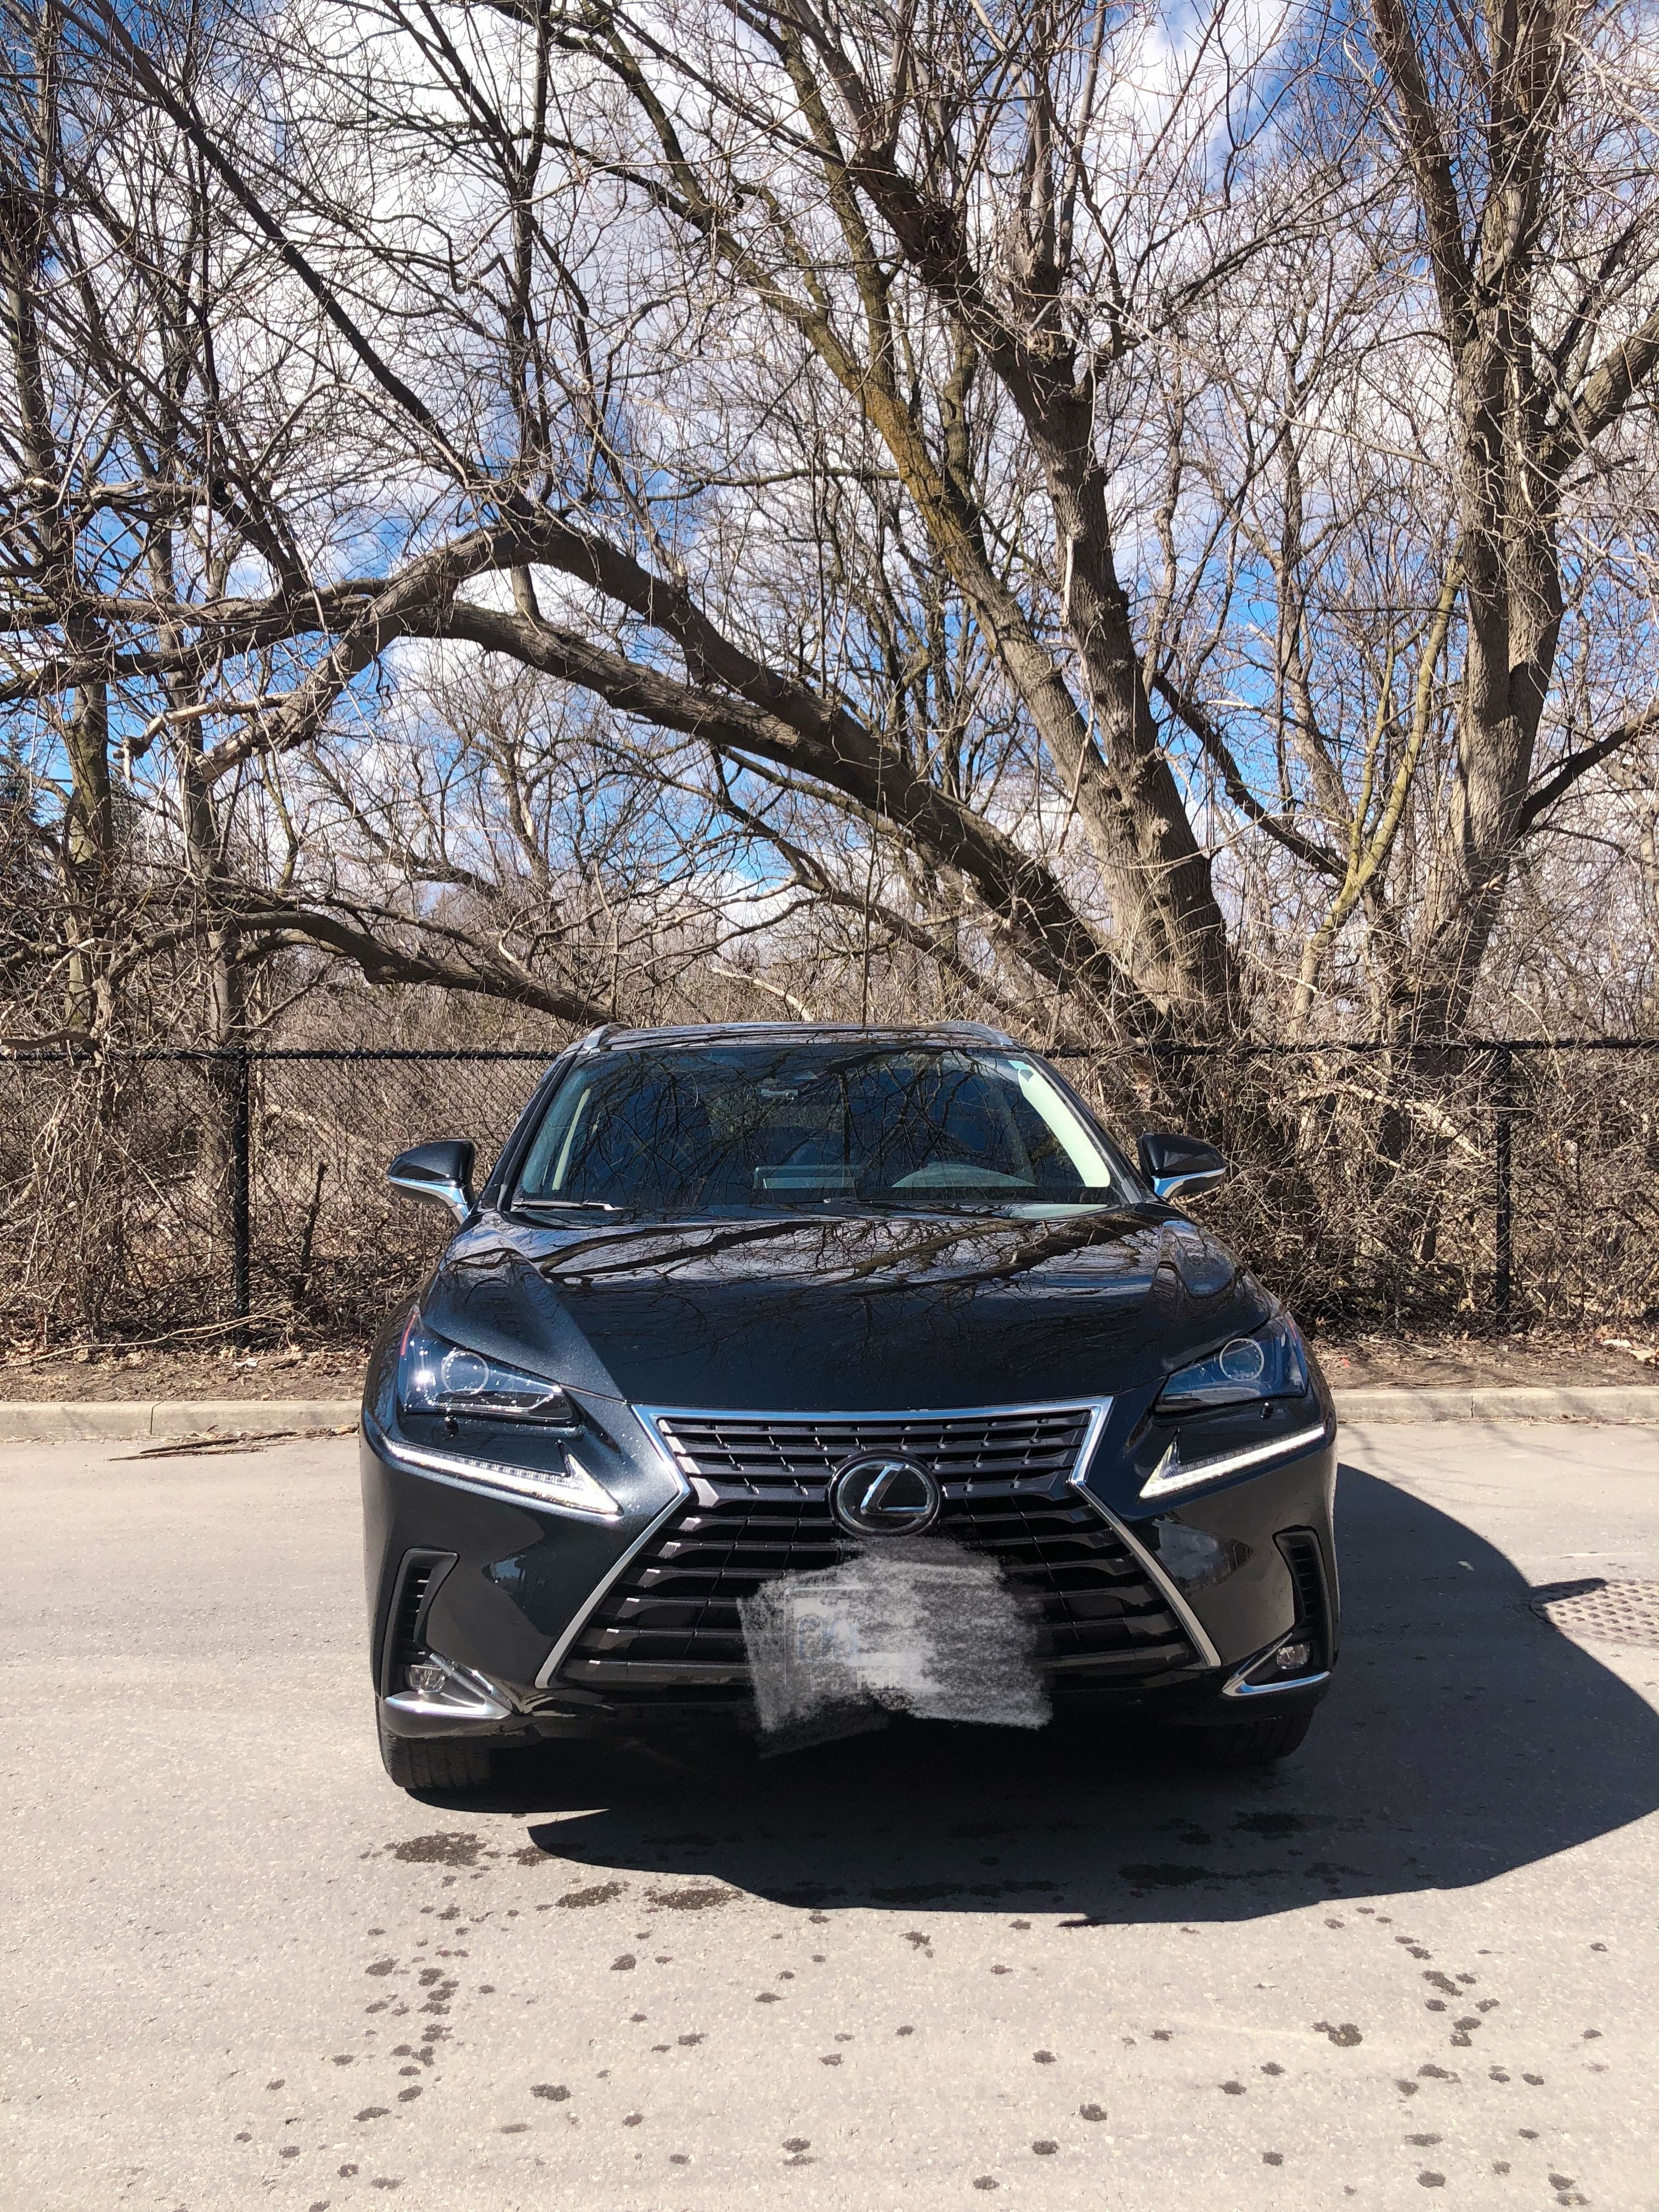 2020 Lexus NX 300 null - INFOCAR - Toronto's Most Comprehensive New and Used Auto Trading Platform